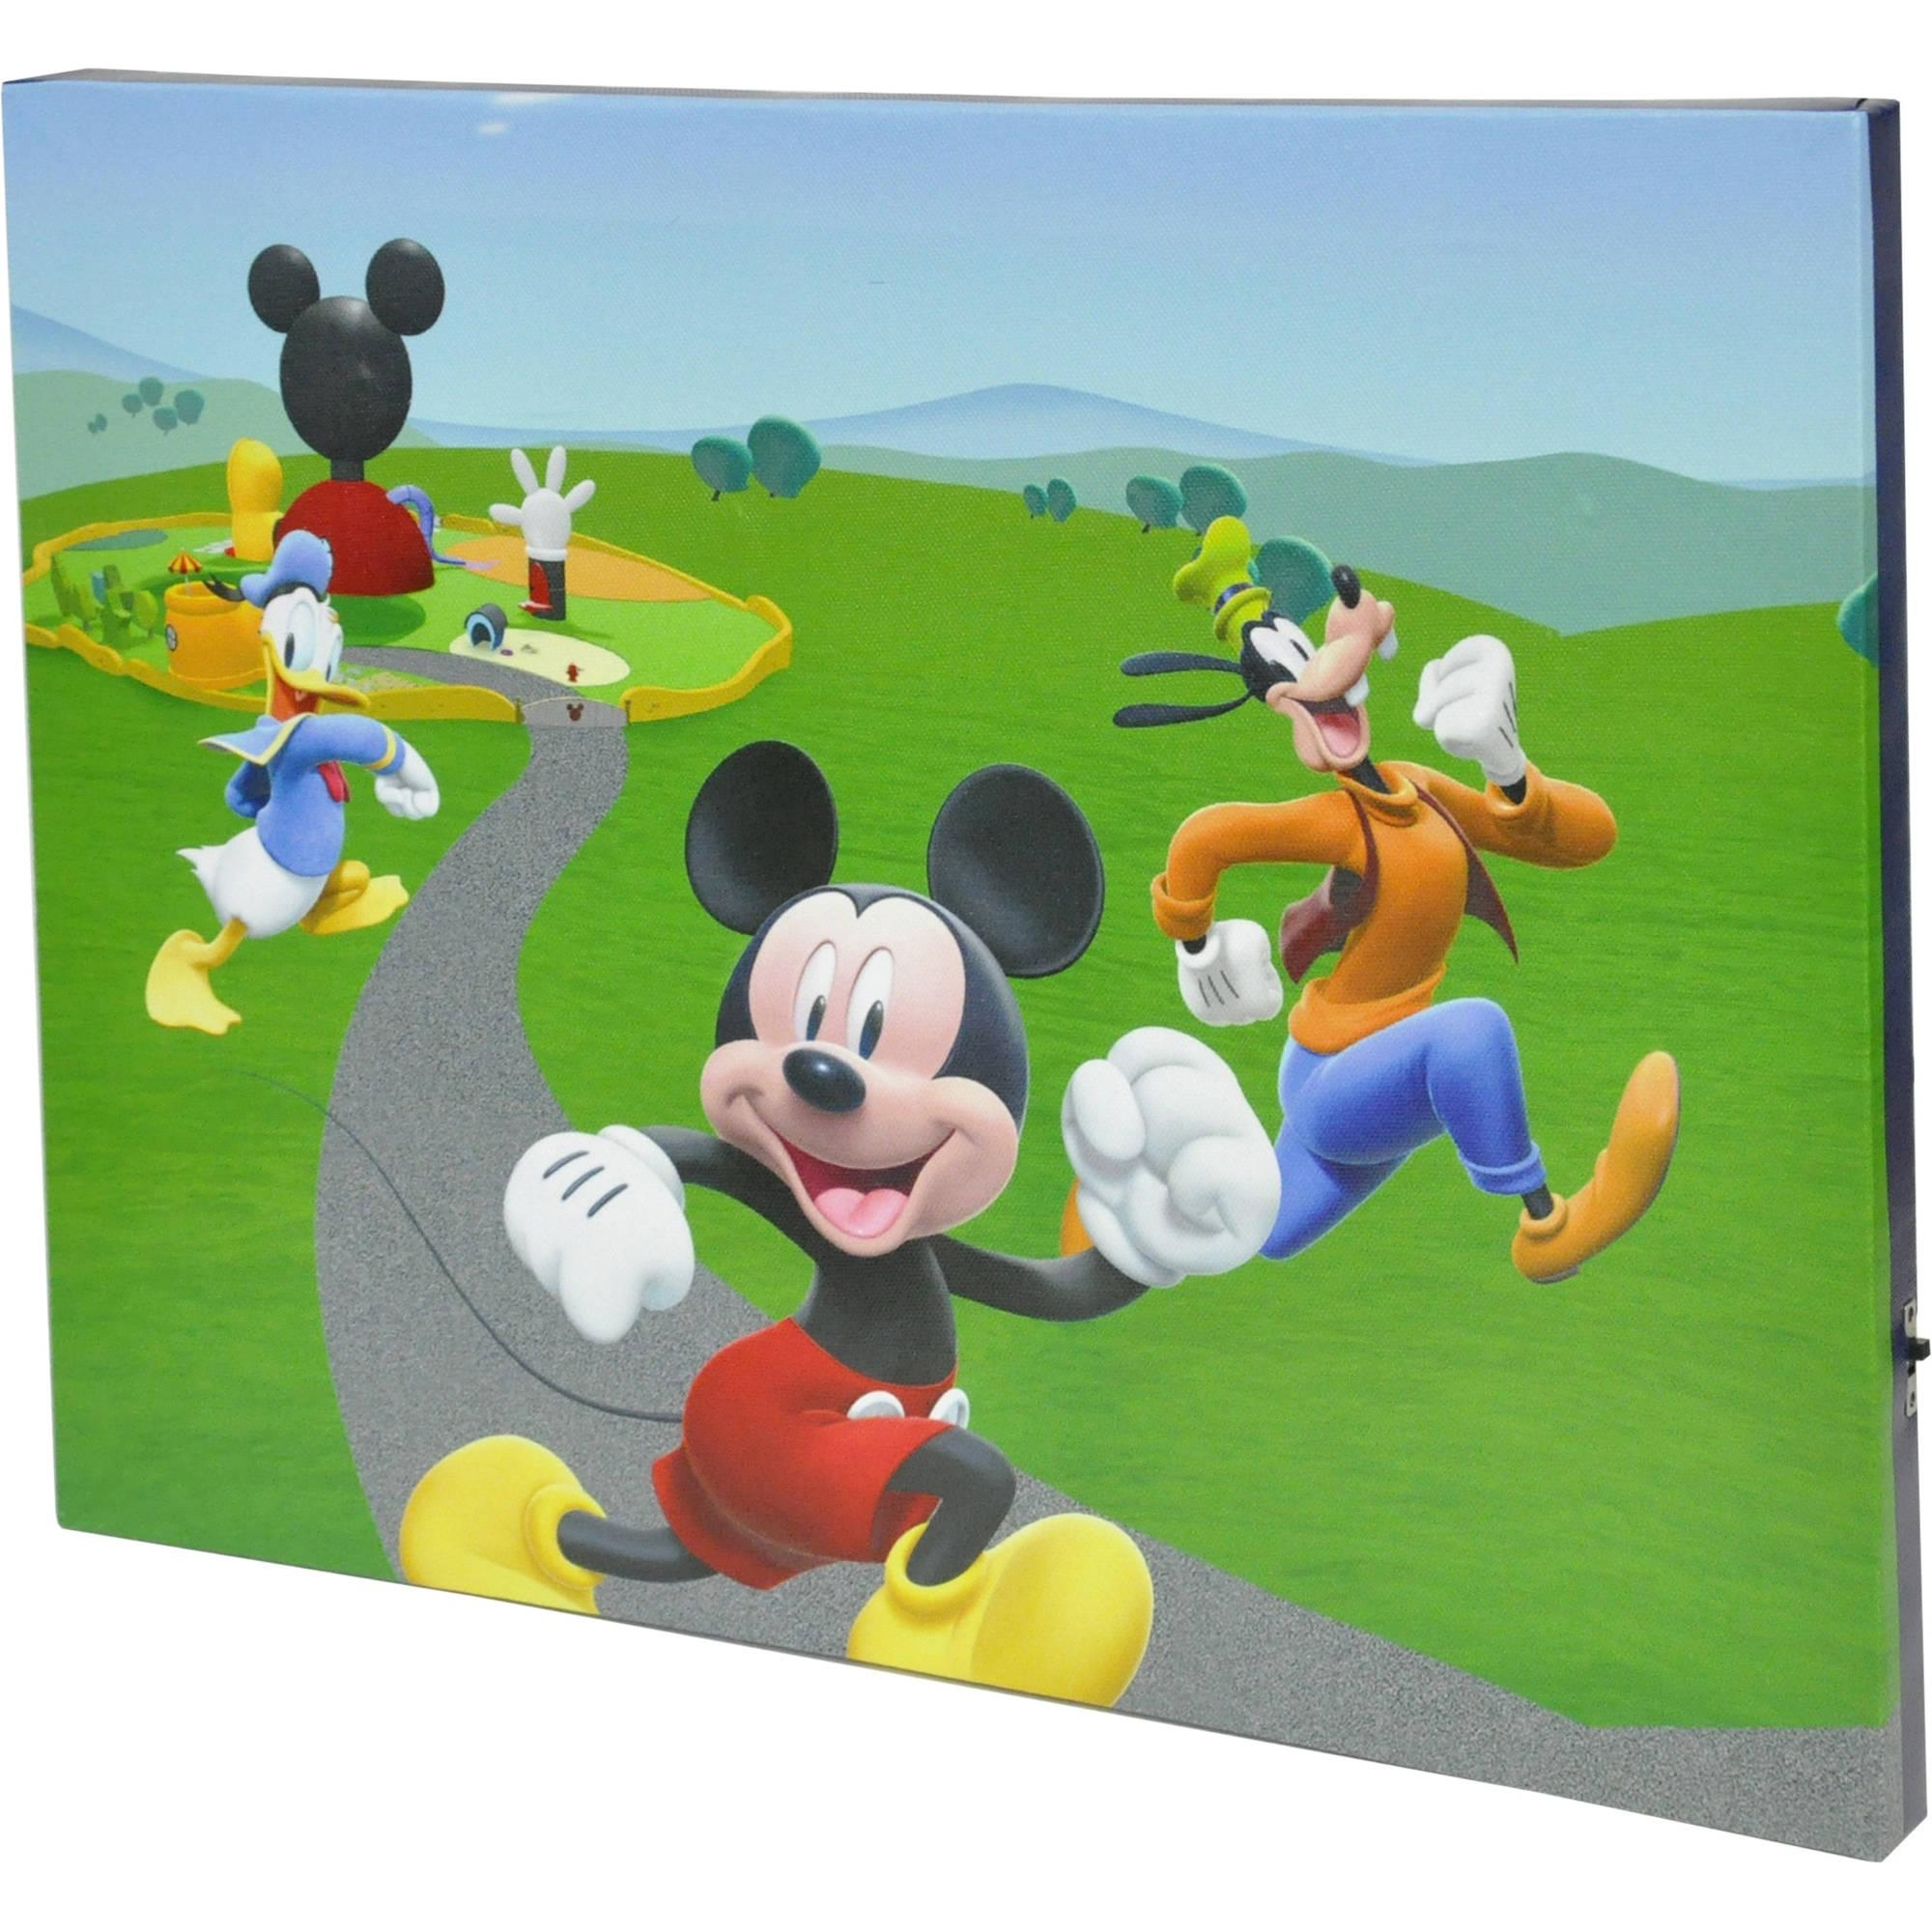 Disney Mickey Mouse Clubhouse Led Light Up Canvas Wall Art Pertaining To Mickey Mouse Clubhouse Wall Art (View 5 of 20)